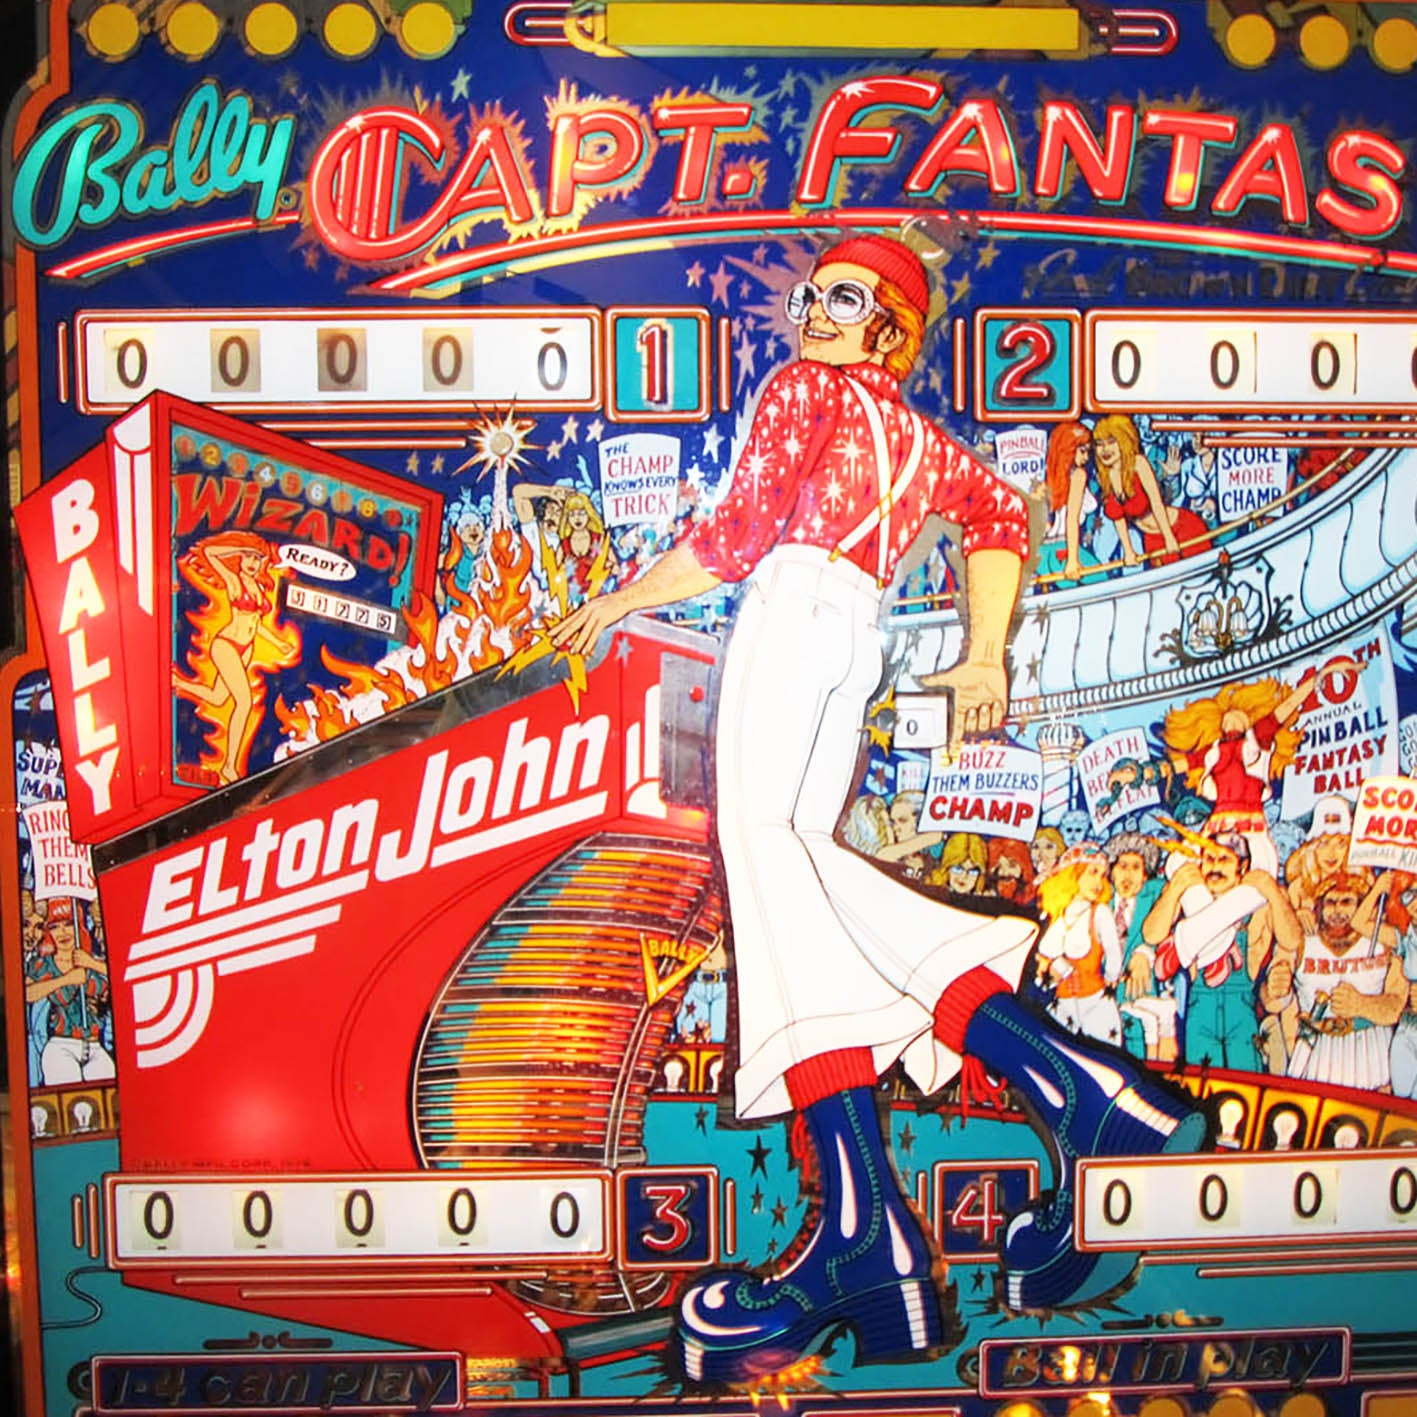 1976 Captain Fantastic Pinball Machine by Bally